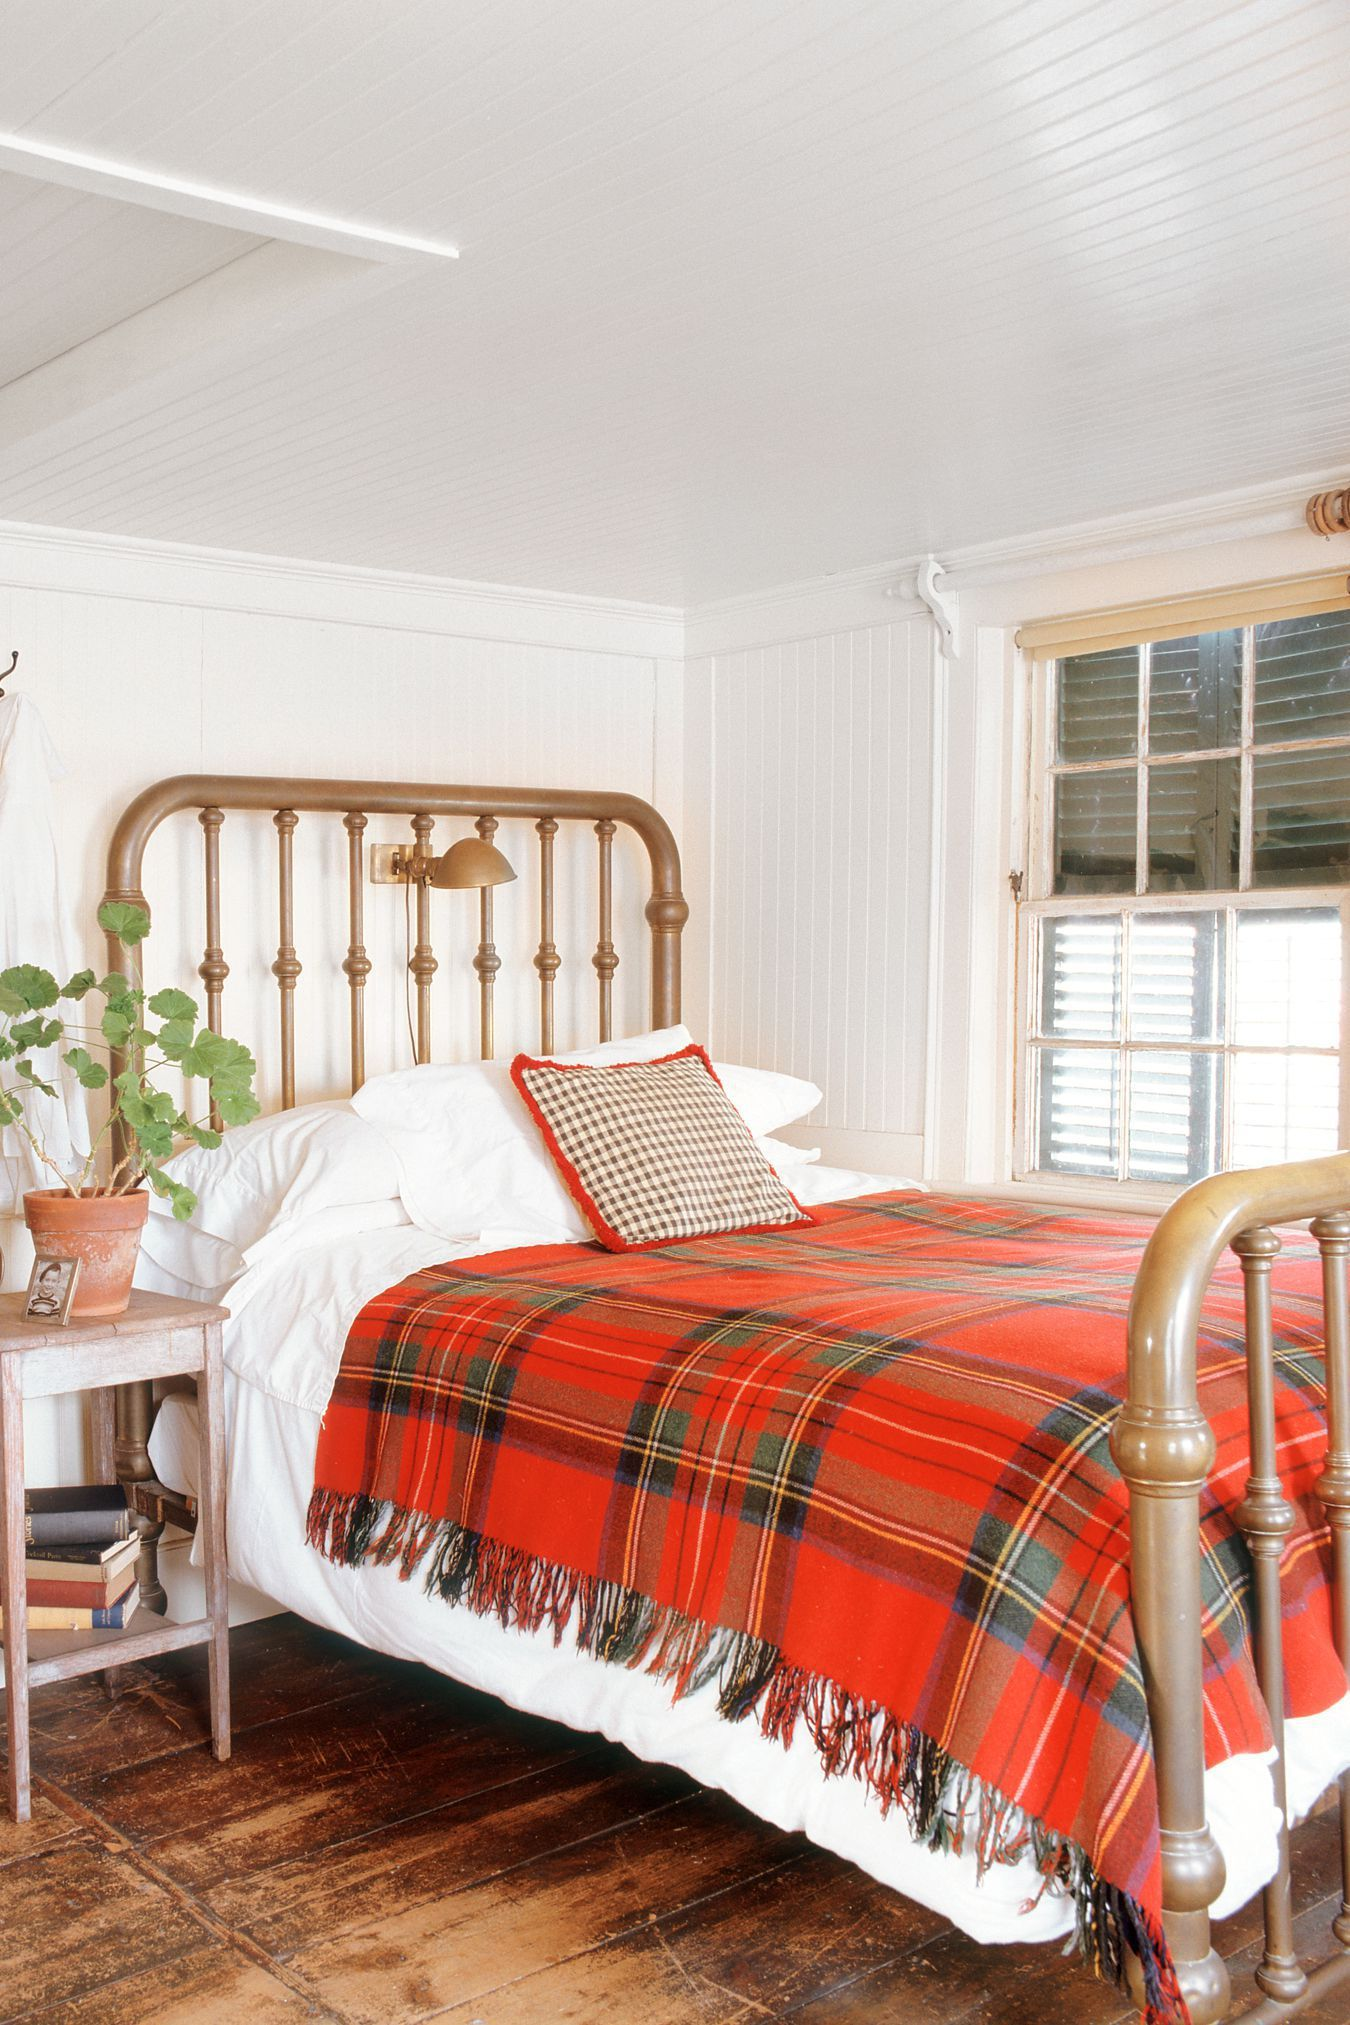 30+ Decorating Tricks To Make Your Bedroom Feel Extra Cozy